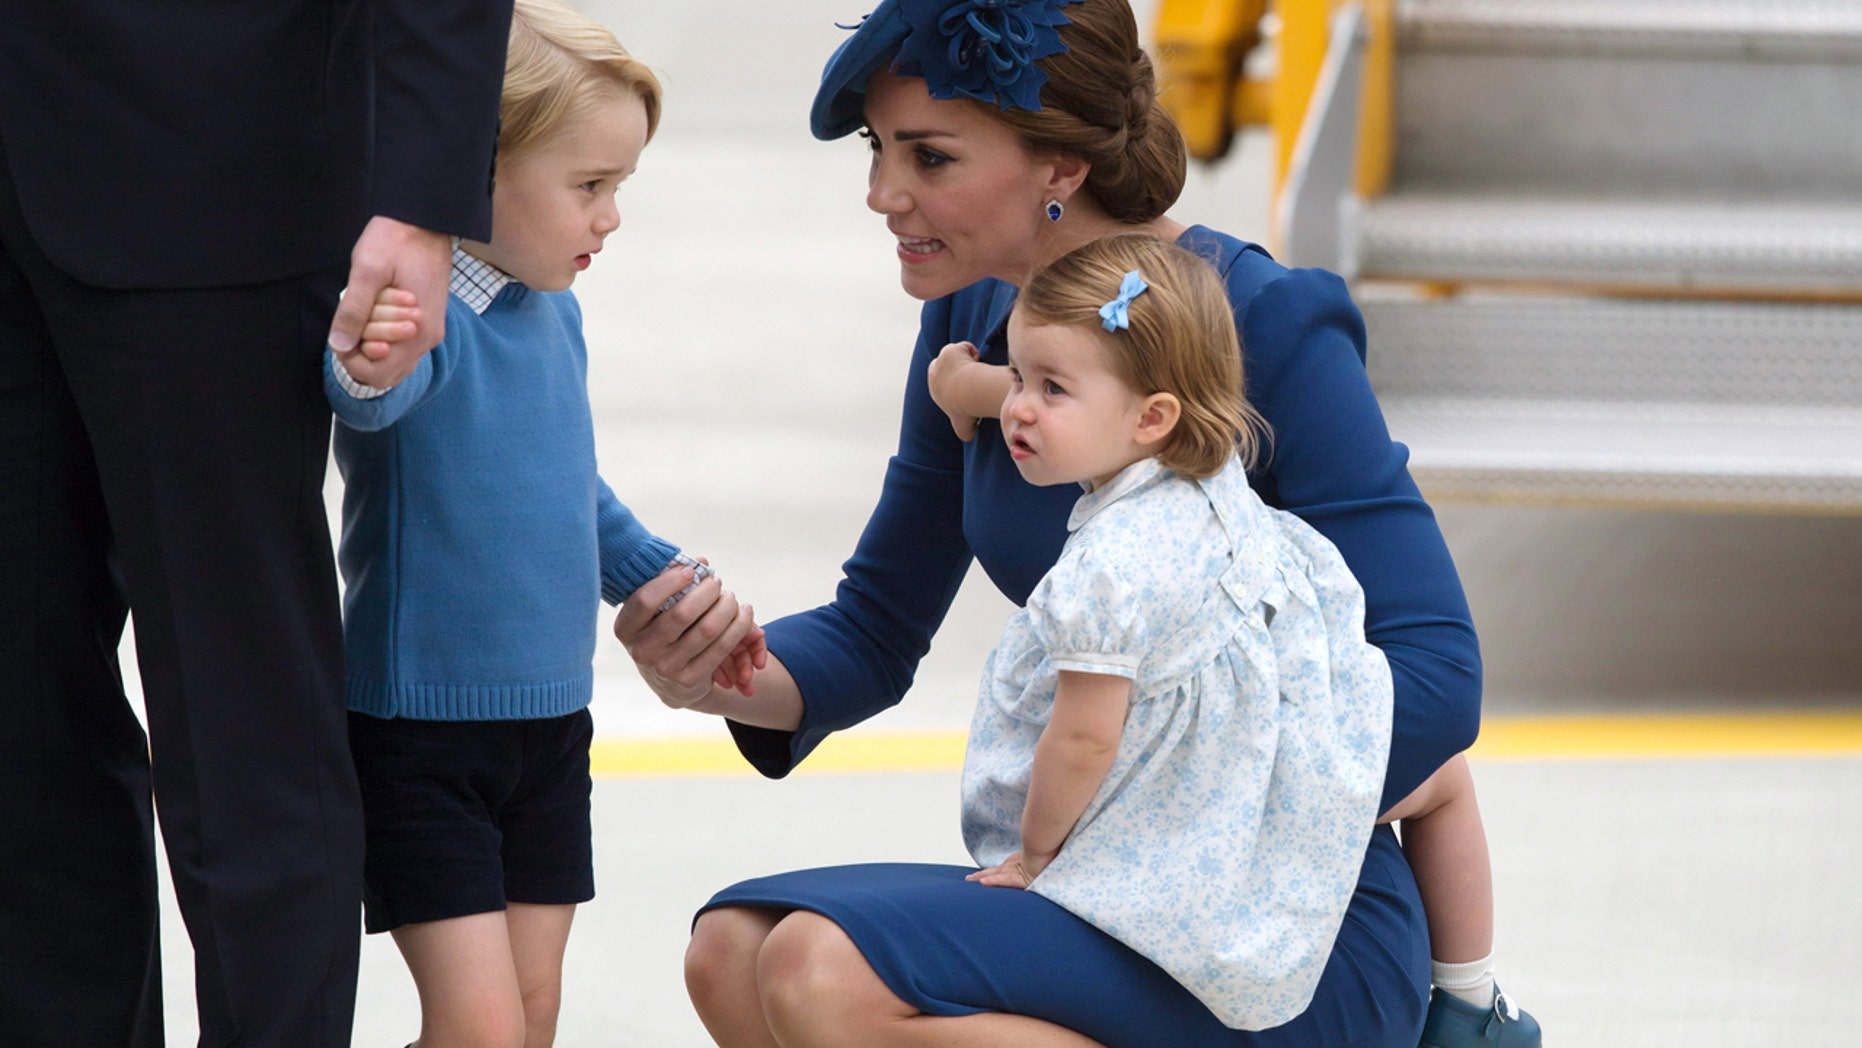 Sept. 24, 2016: Kate, the Duchess of Cambridge, holds her daughter Princess Charlotte as she speaks to her son Prince George as she and her husband Britain's Prince William, the Duke of Cambridge, arrive in Victoria, British Columbia.